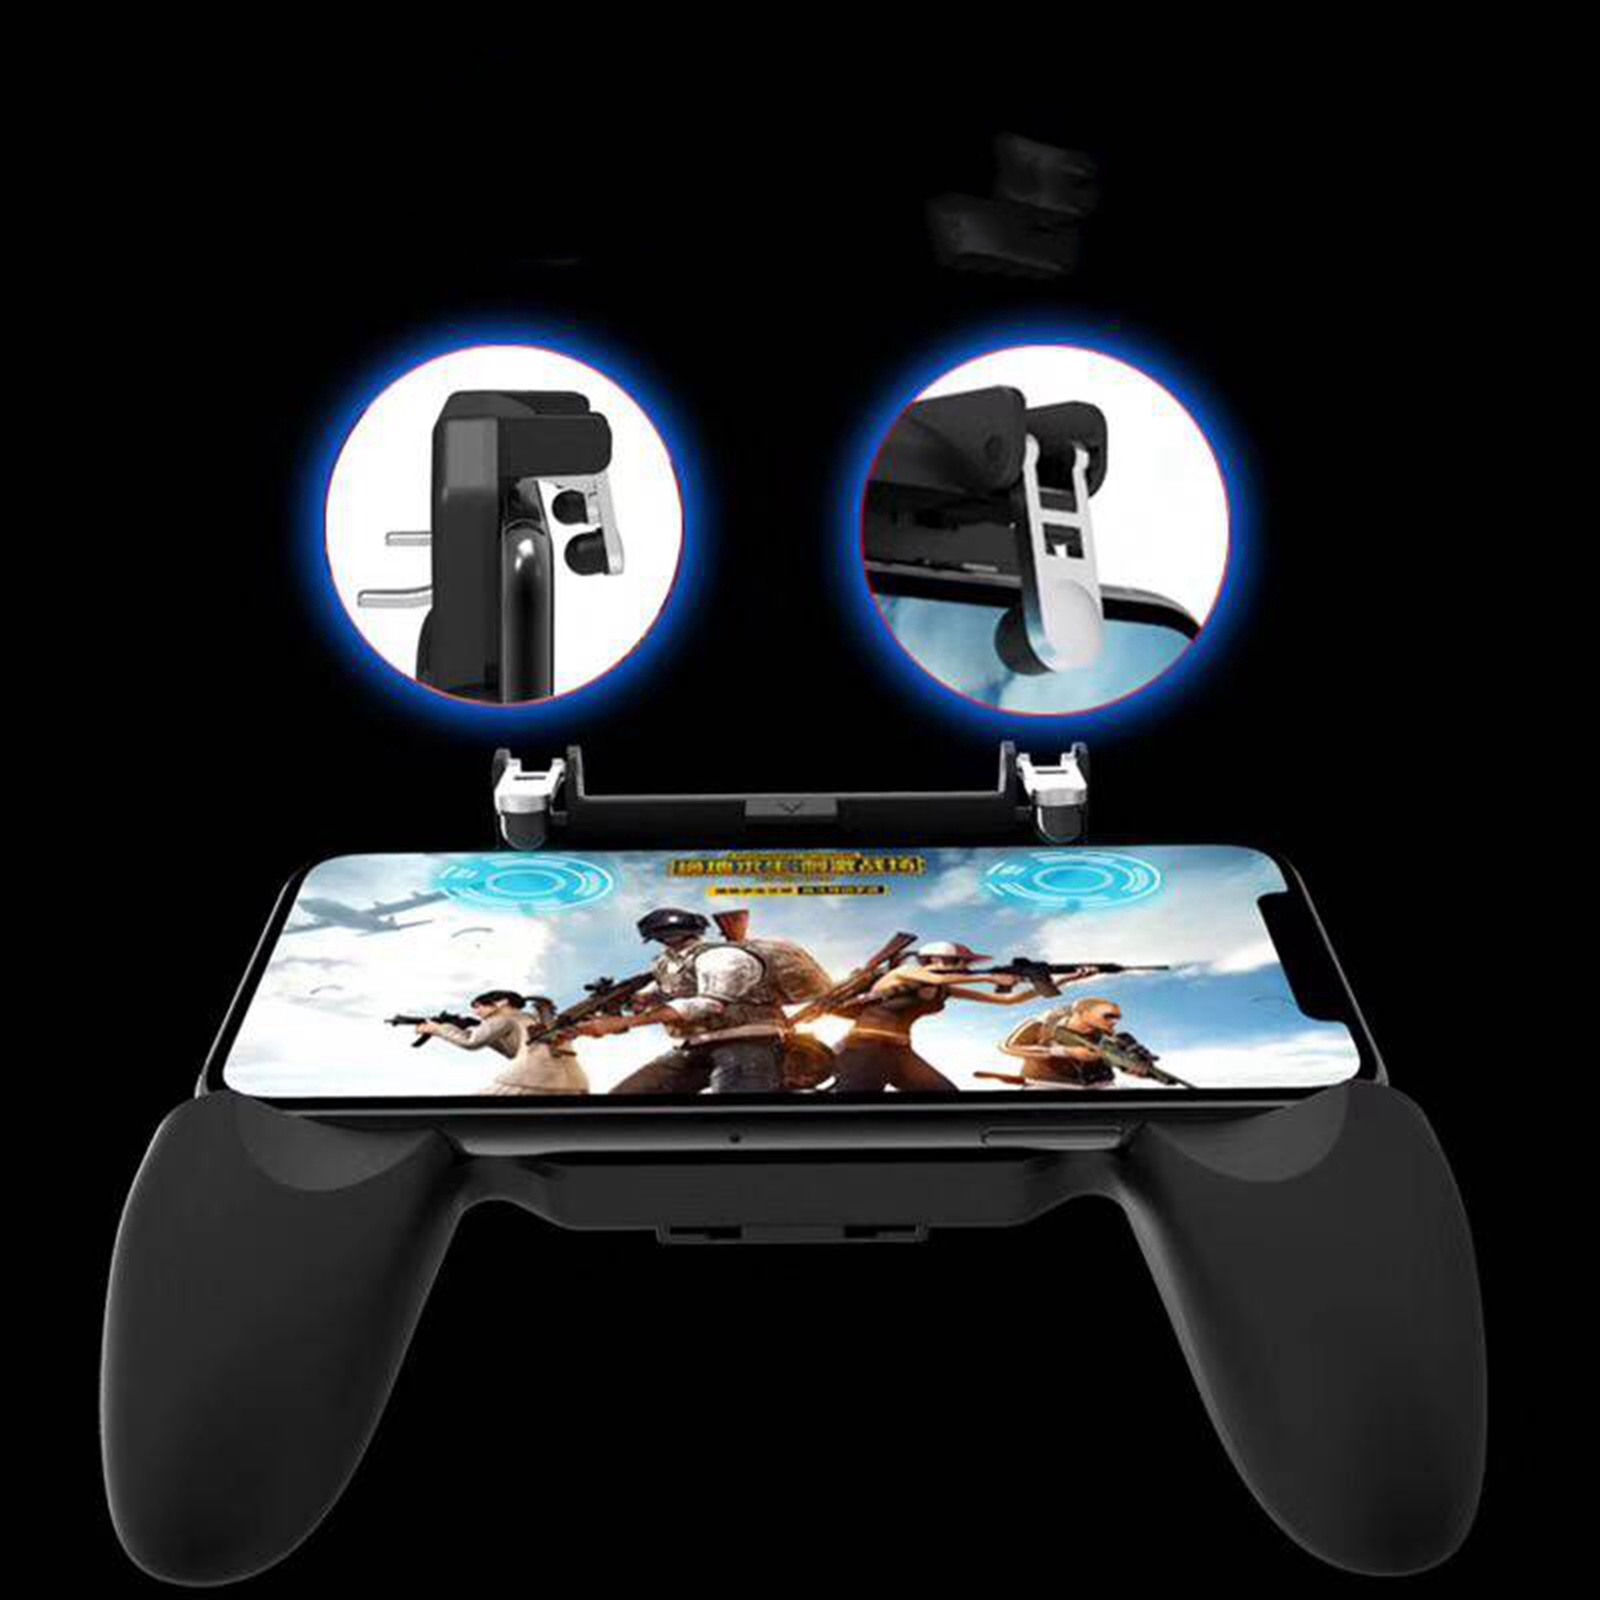 New W10 Gamepad Handle Wireless Controller Joystick for Android IOS Mobile Phone Game Trigger Console Remote Control